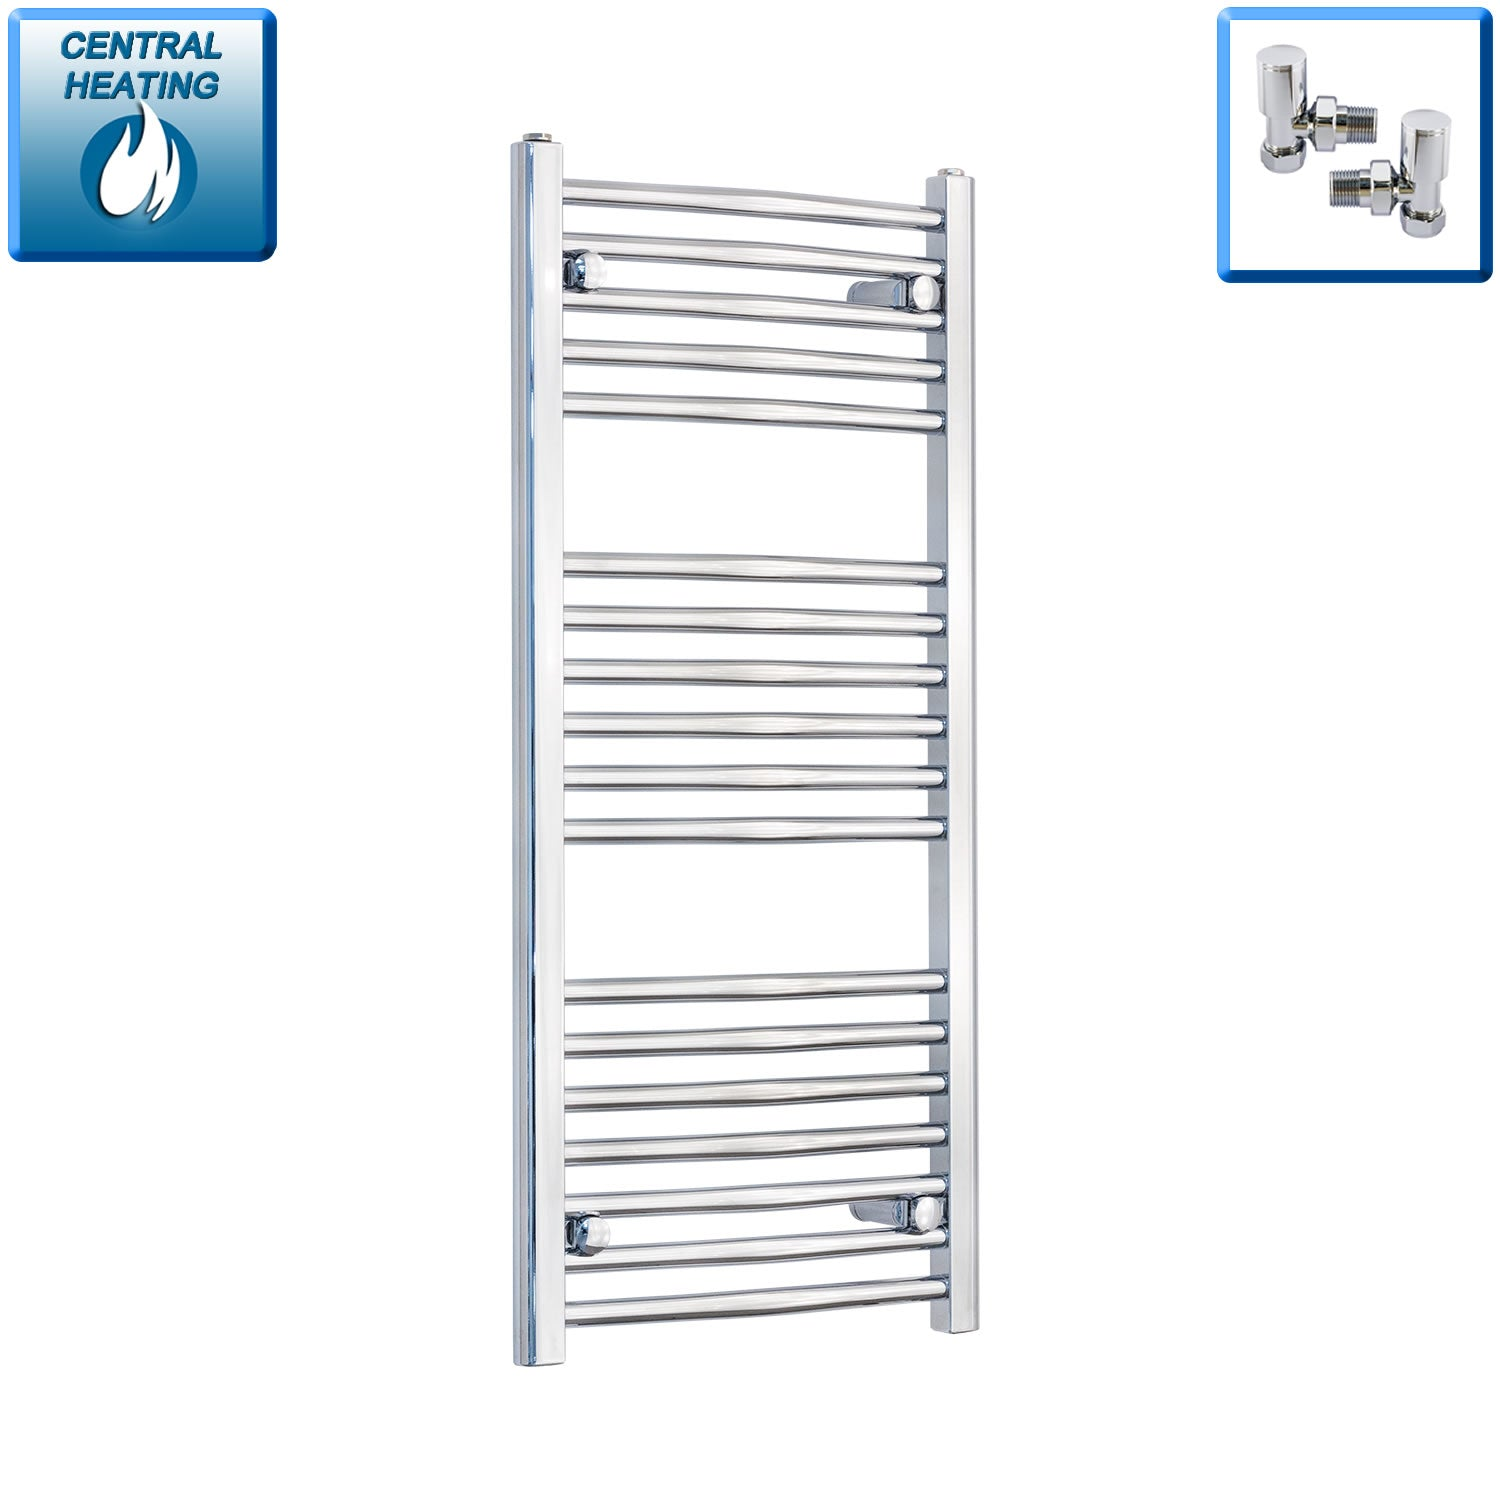 450mm Wide 1000mm High Curved Chrome Heated Towel Rail Radiator HTR,With Angled Valve